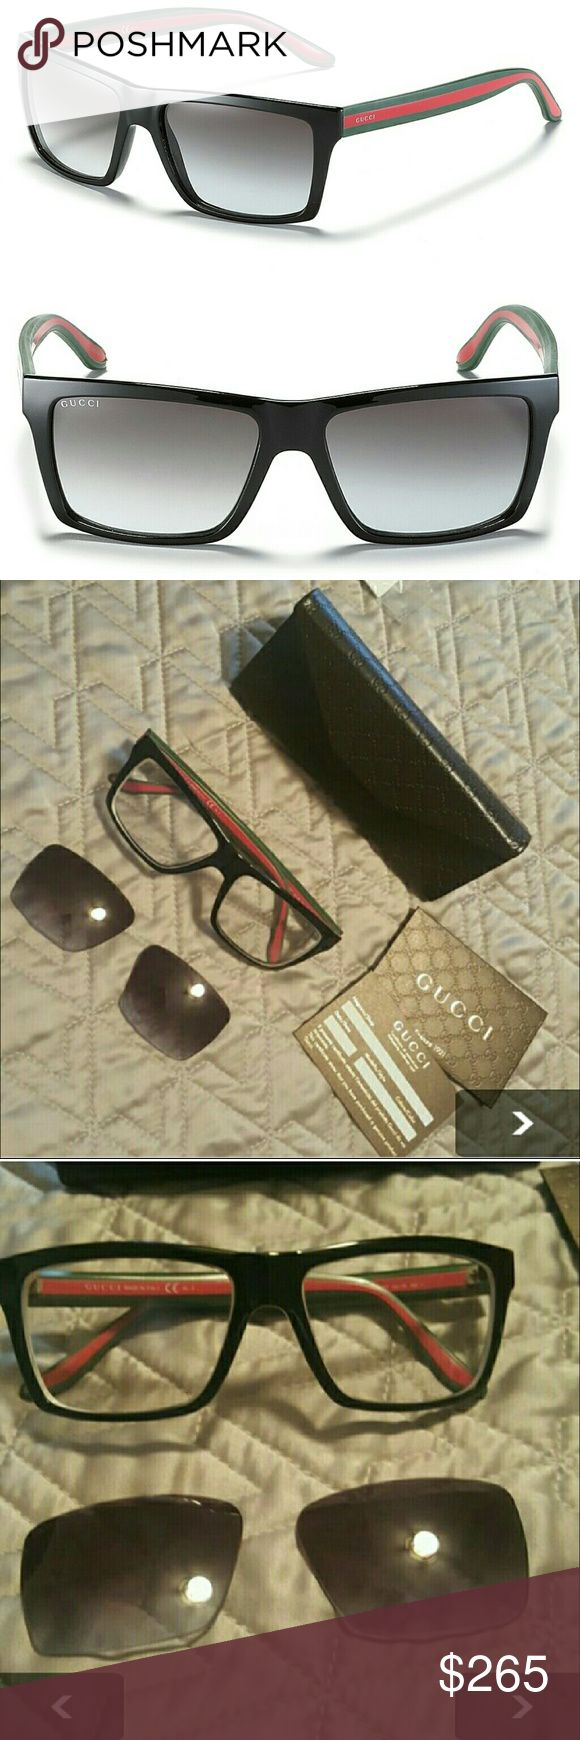 GUCCI SUNGLASSES 📣(READ DESCRIPTION) * I SHIP NEXT DAY * PRICE IS FIRM  * CONDITION 8/10 * AUTHENTIC  * GENTLY WORN (PLEASE BE AWARE THAT THESE ARE USED) * WILL HAVE PRESCRIPTION LENSES TAKEN OUT. * NO MODELING  COMES WITH: * CASE  * CLOTH  * AUTHENTICATION CARDS (EVERYTHING SHOWN IN PICTURE) Gucci Accessories Sunglasses